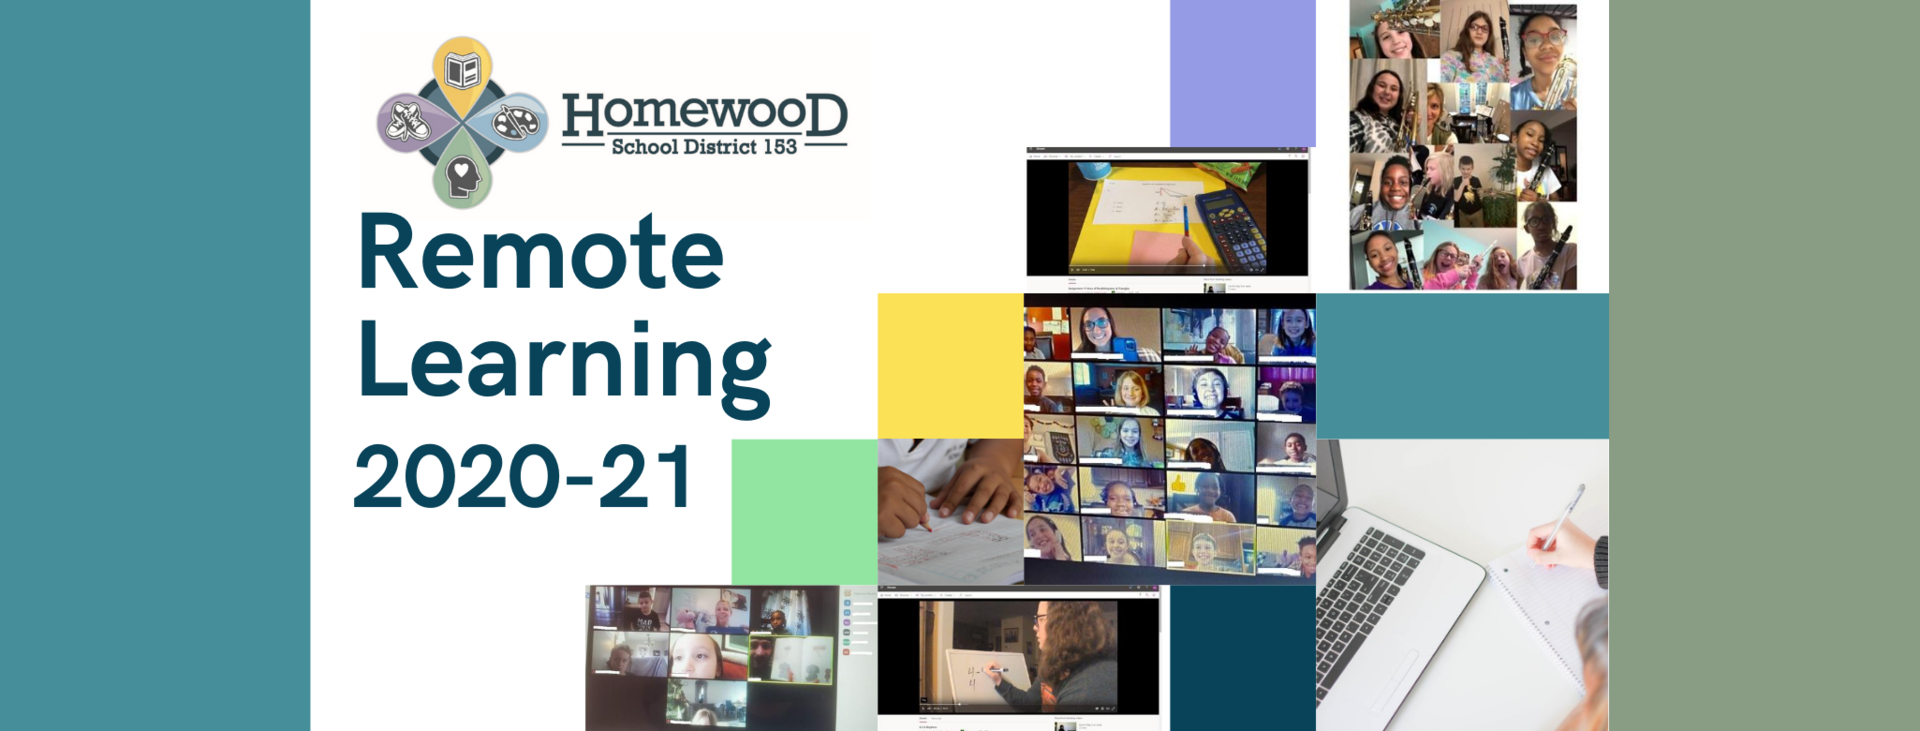 remote learning 2020-21